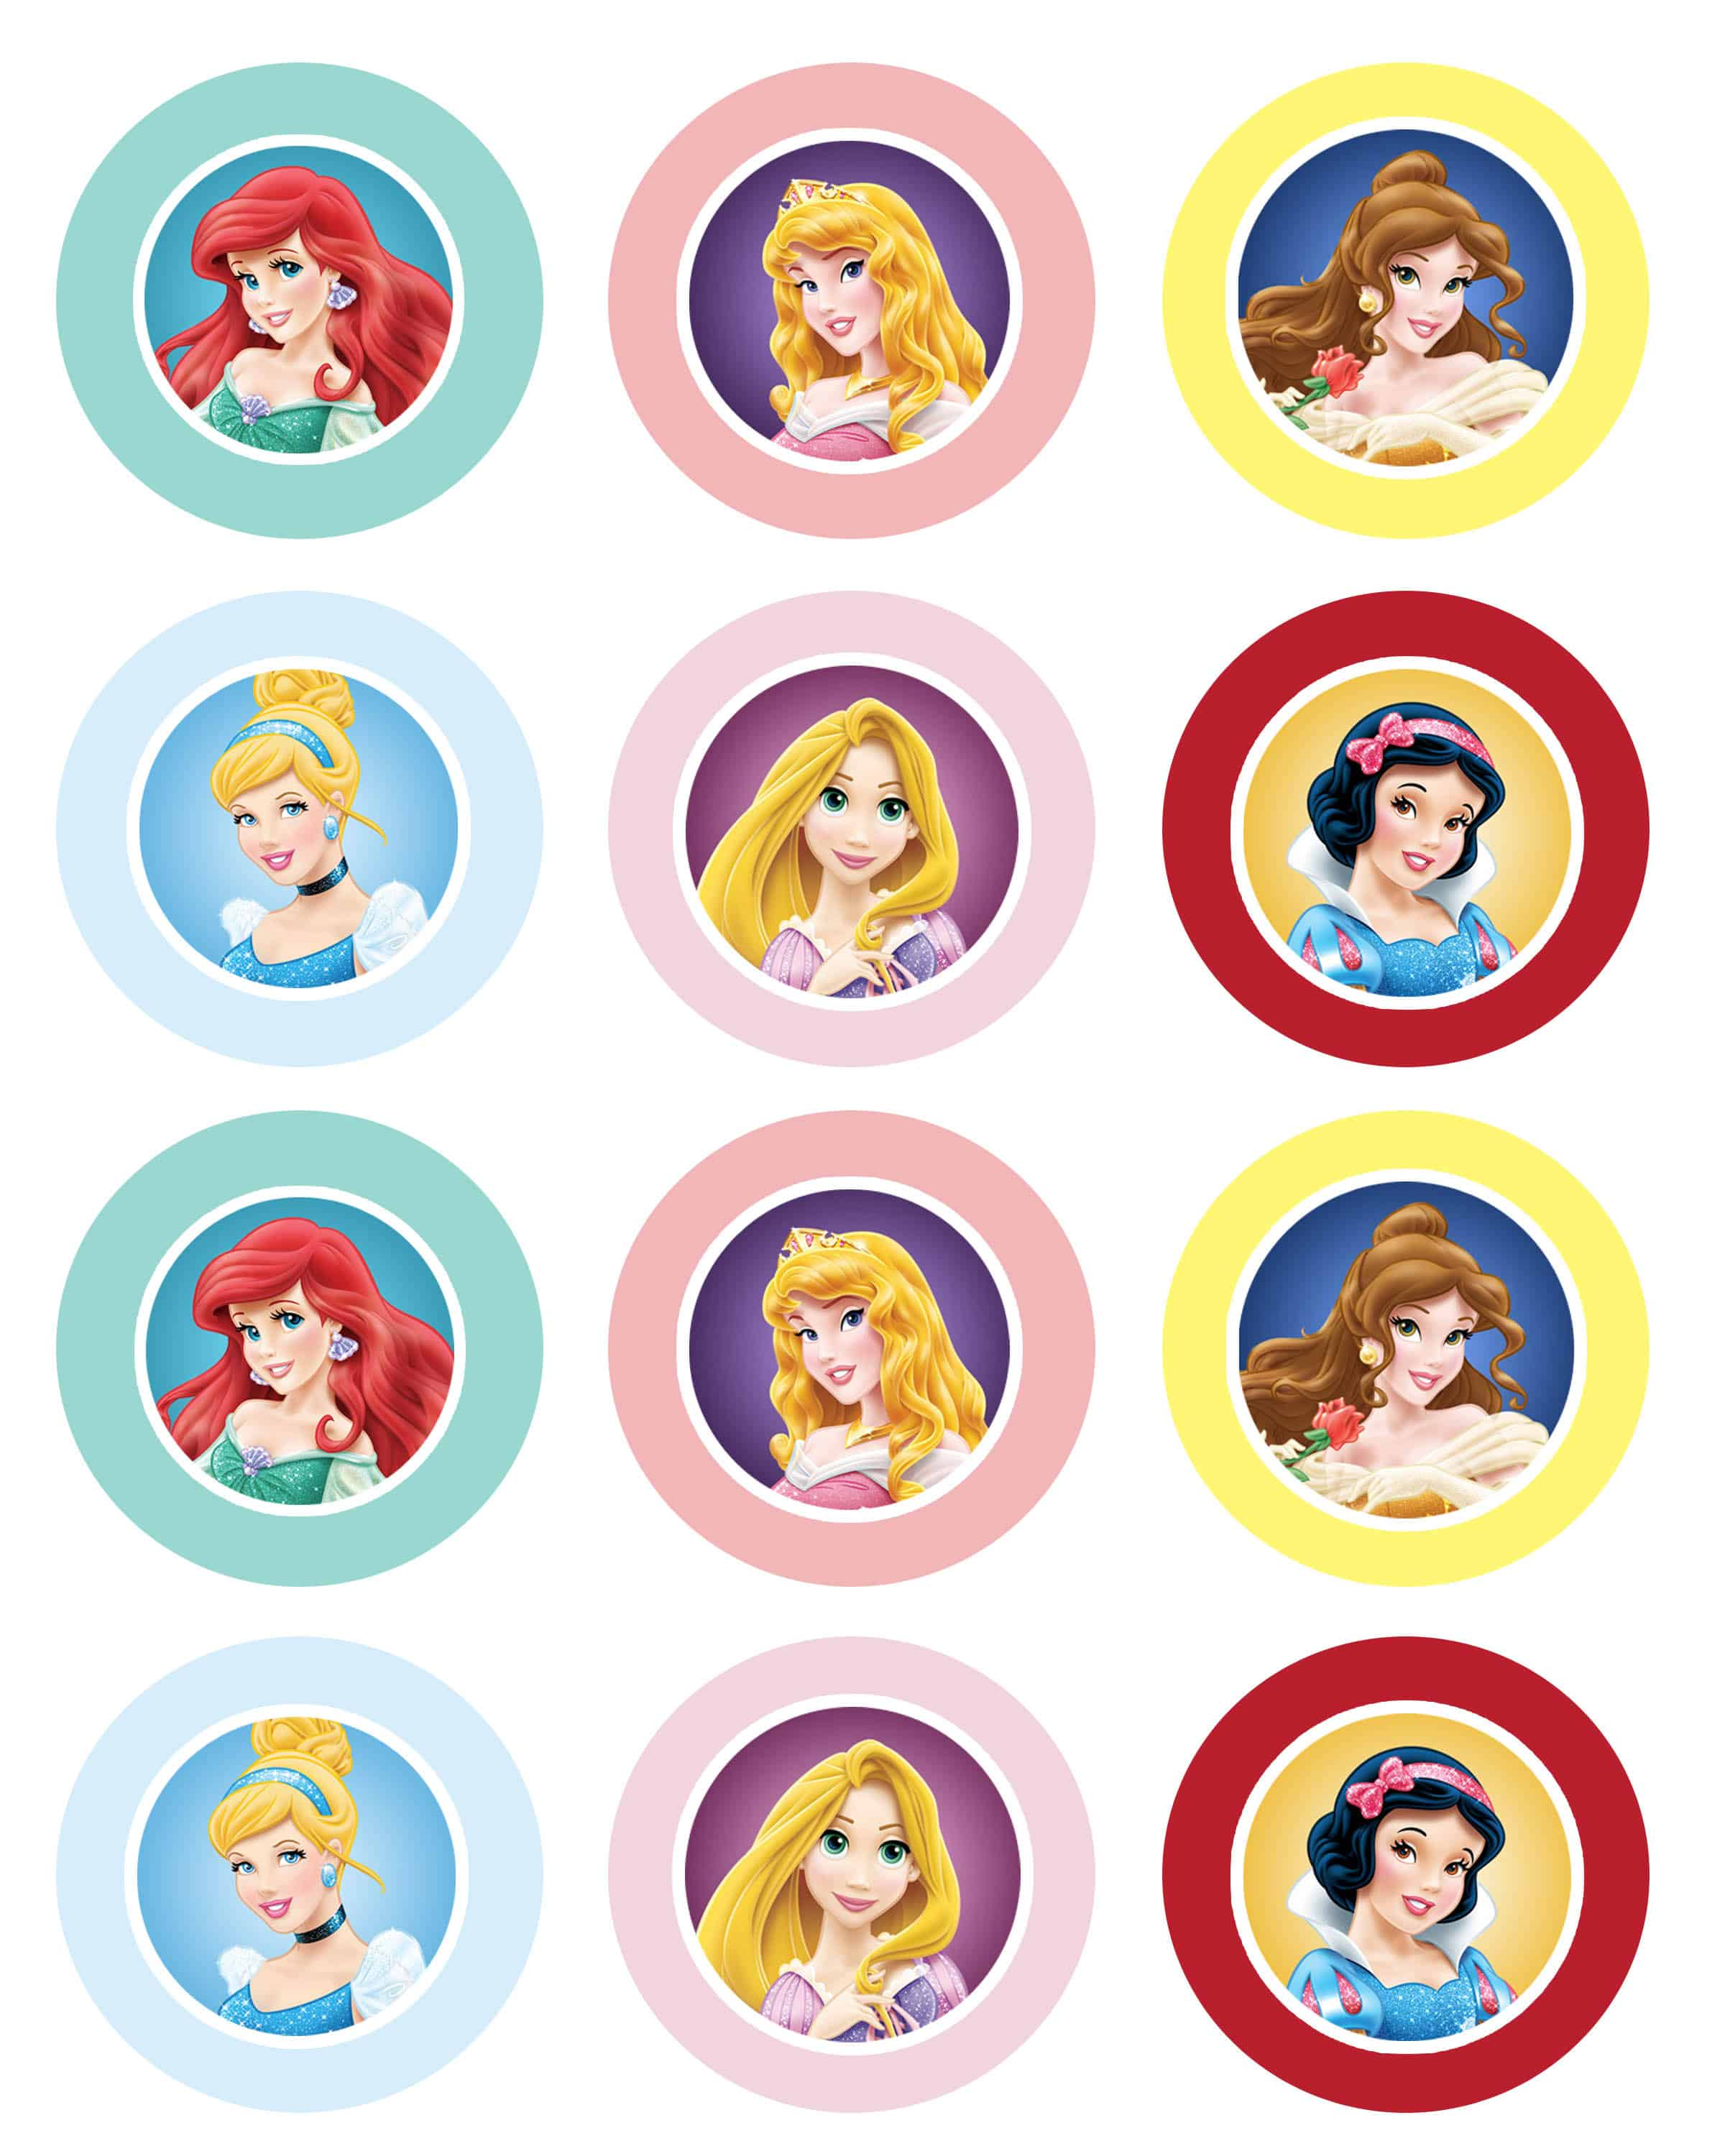 Cupcake Toppers : Disney Princess Cupcakes and GIVEAWAY! - Cupcake Diaries